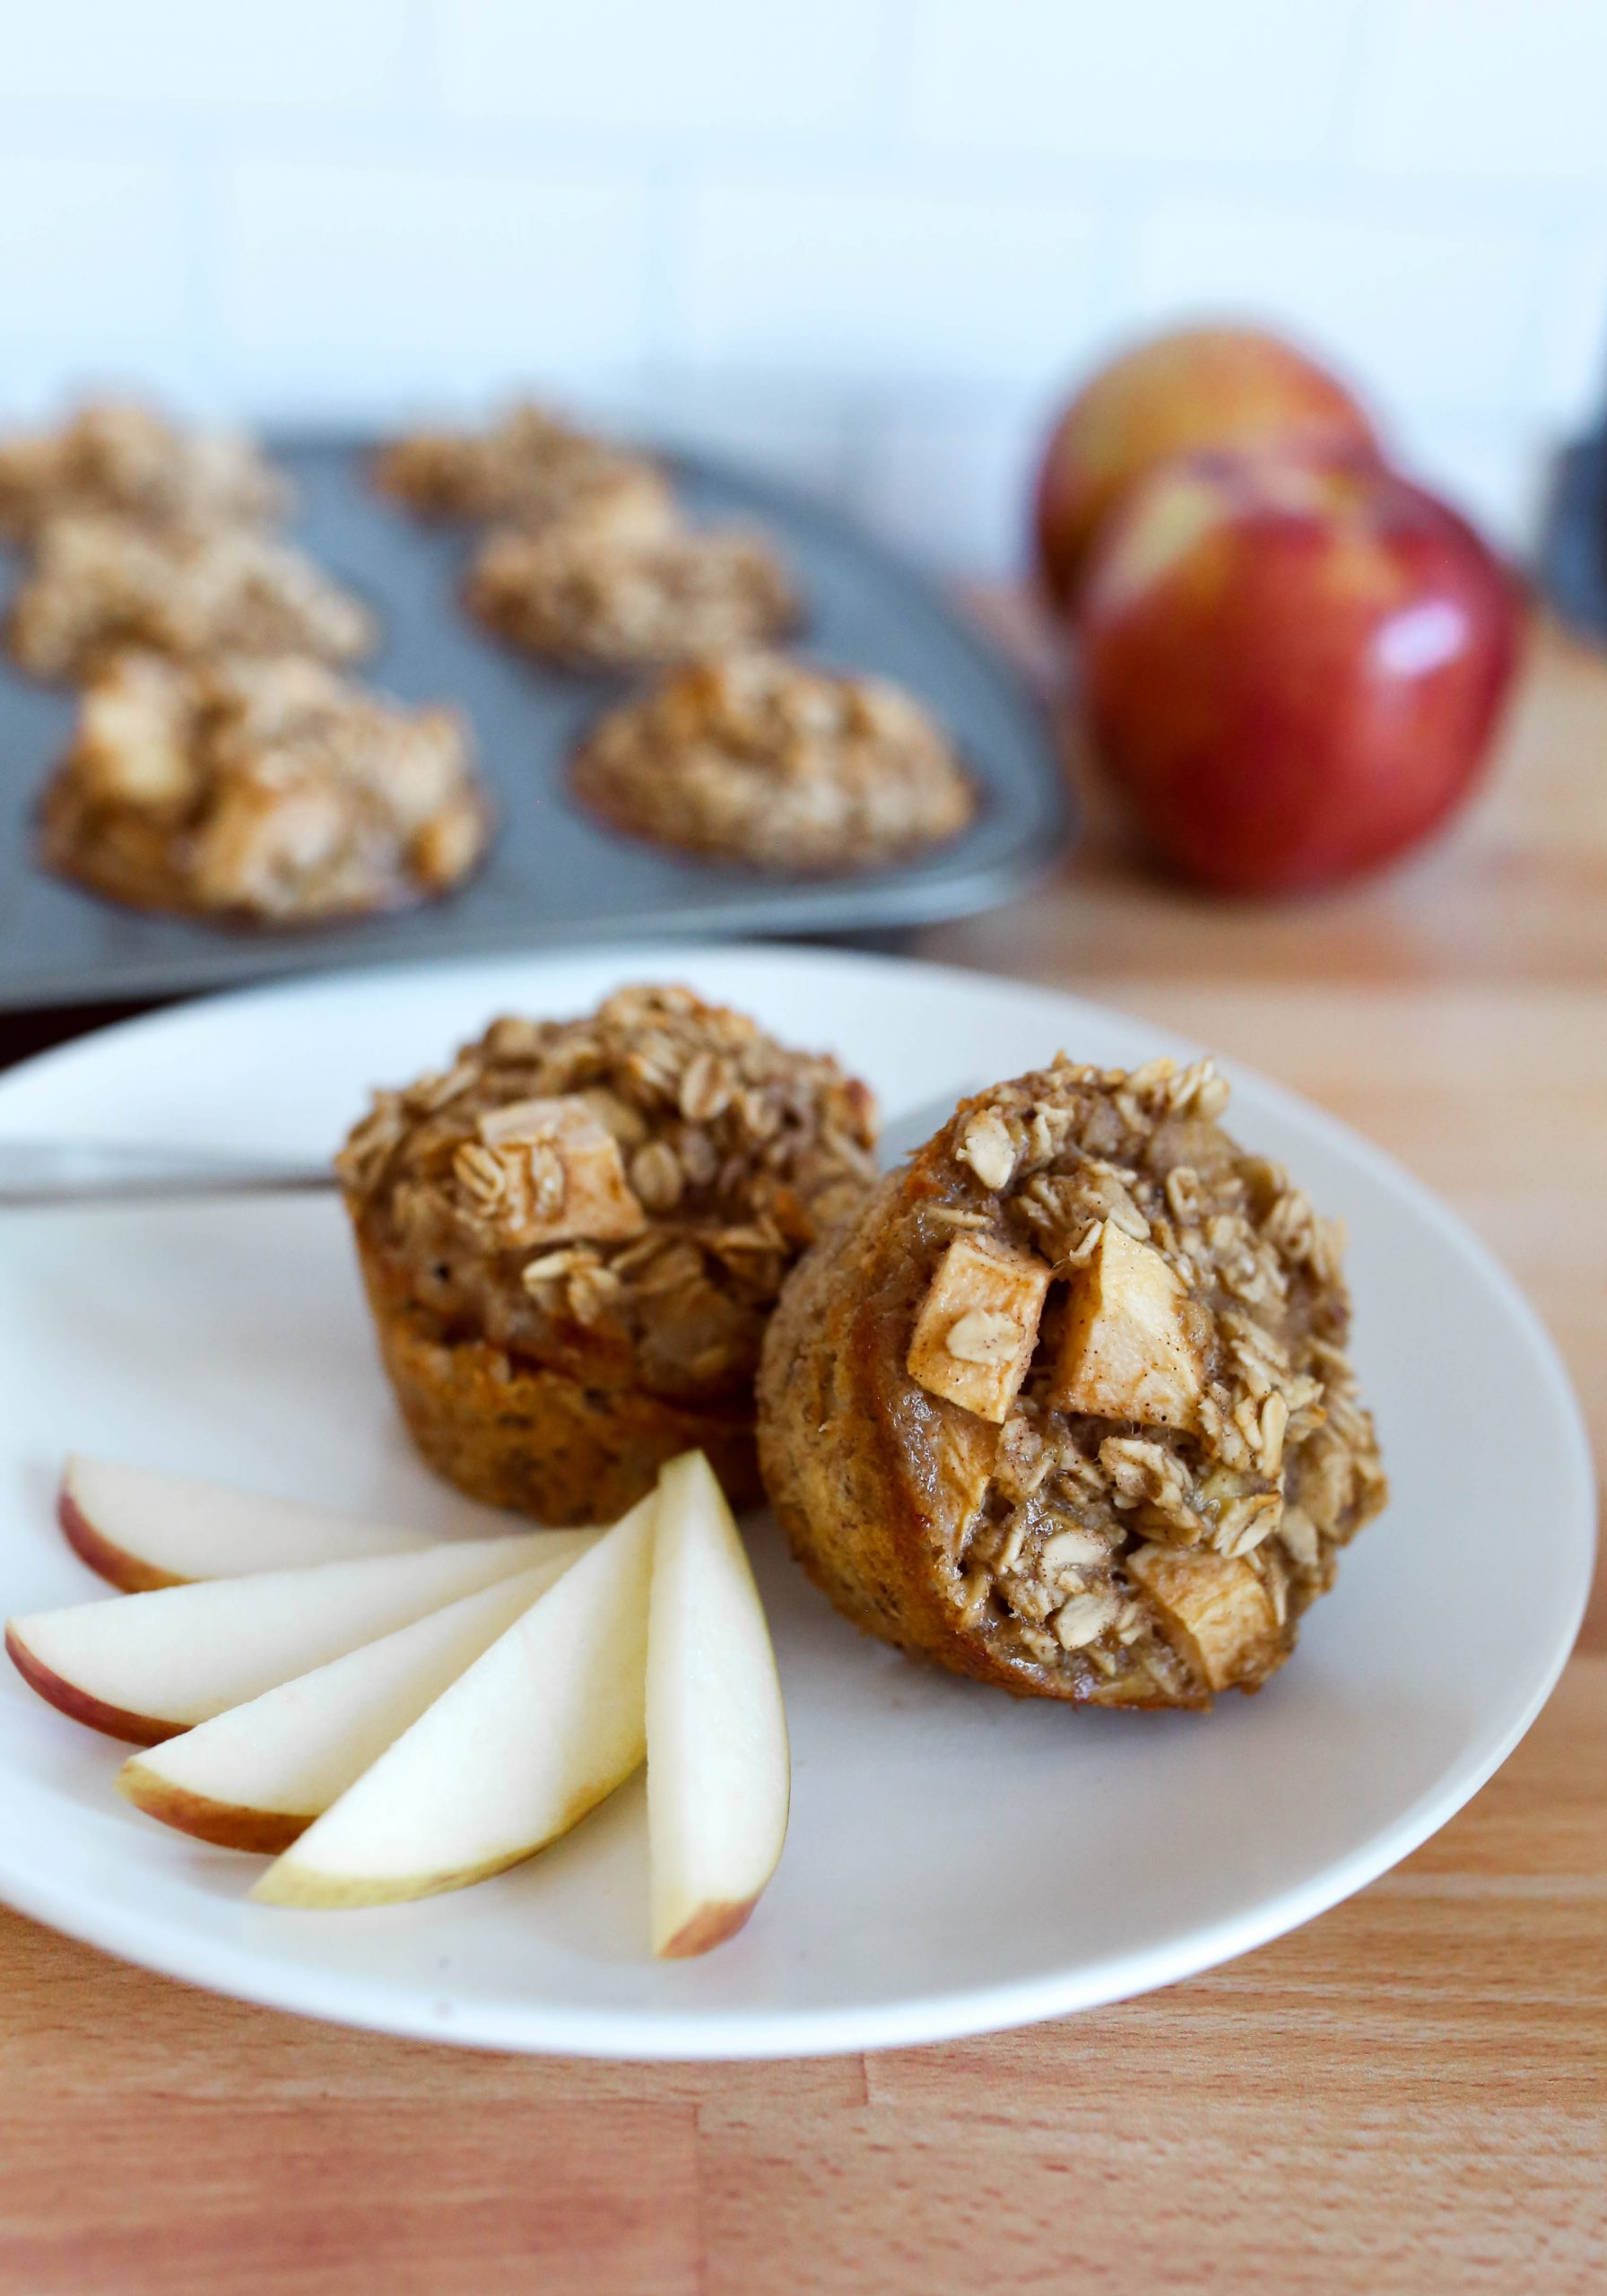 Baked Banana Oatmeal Cups with Apple